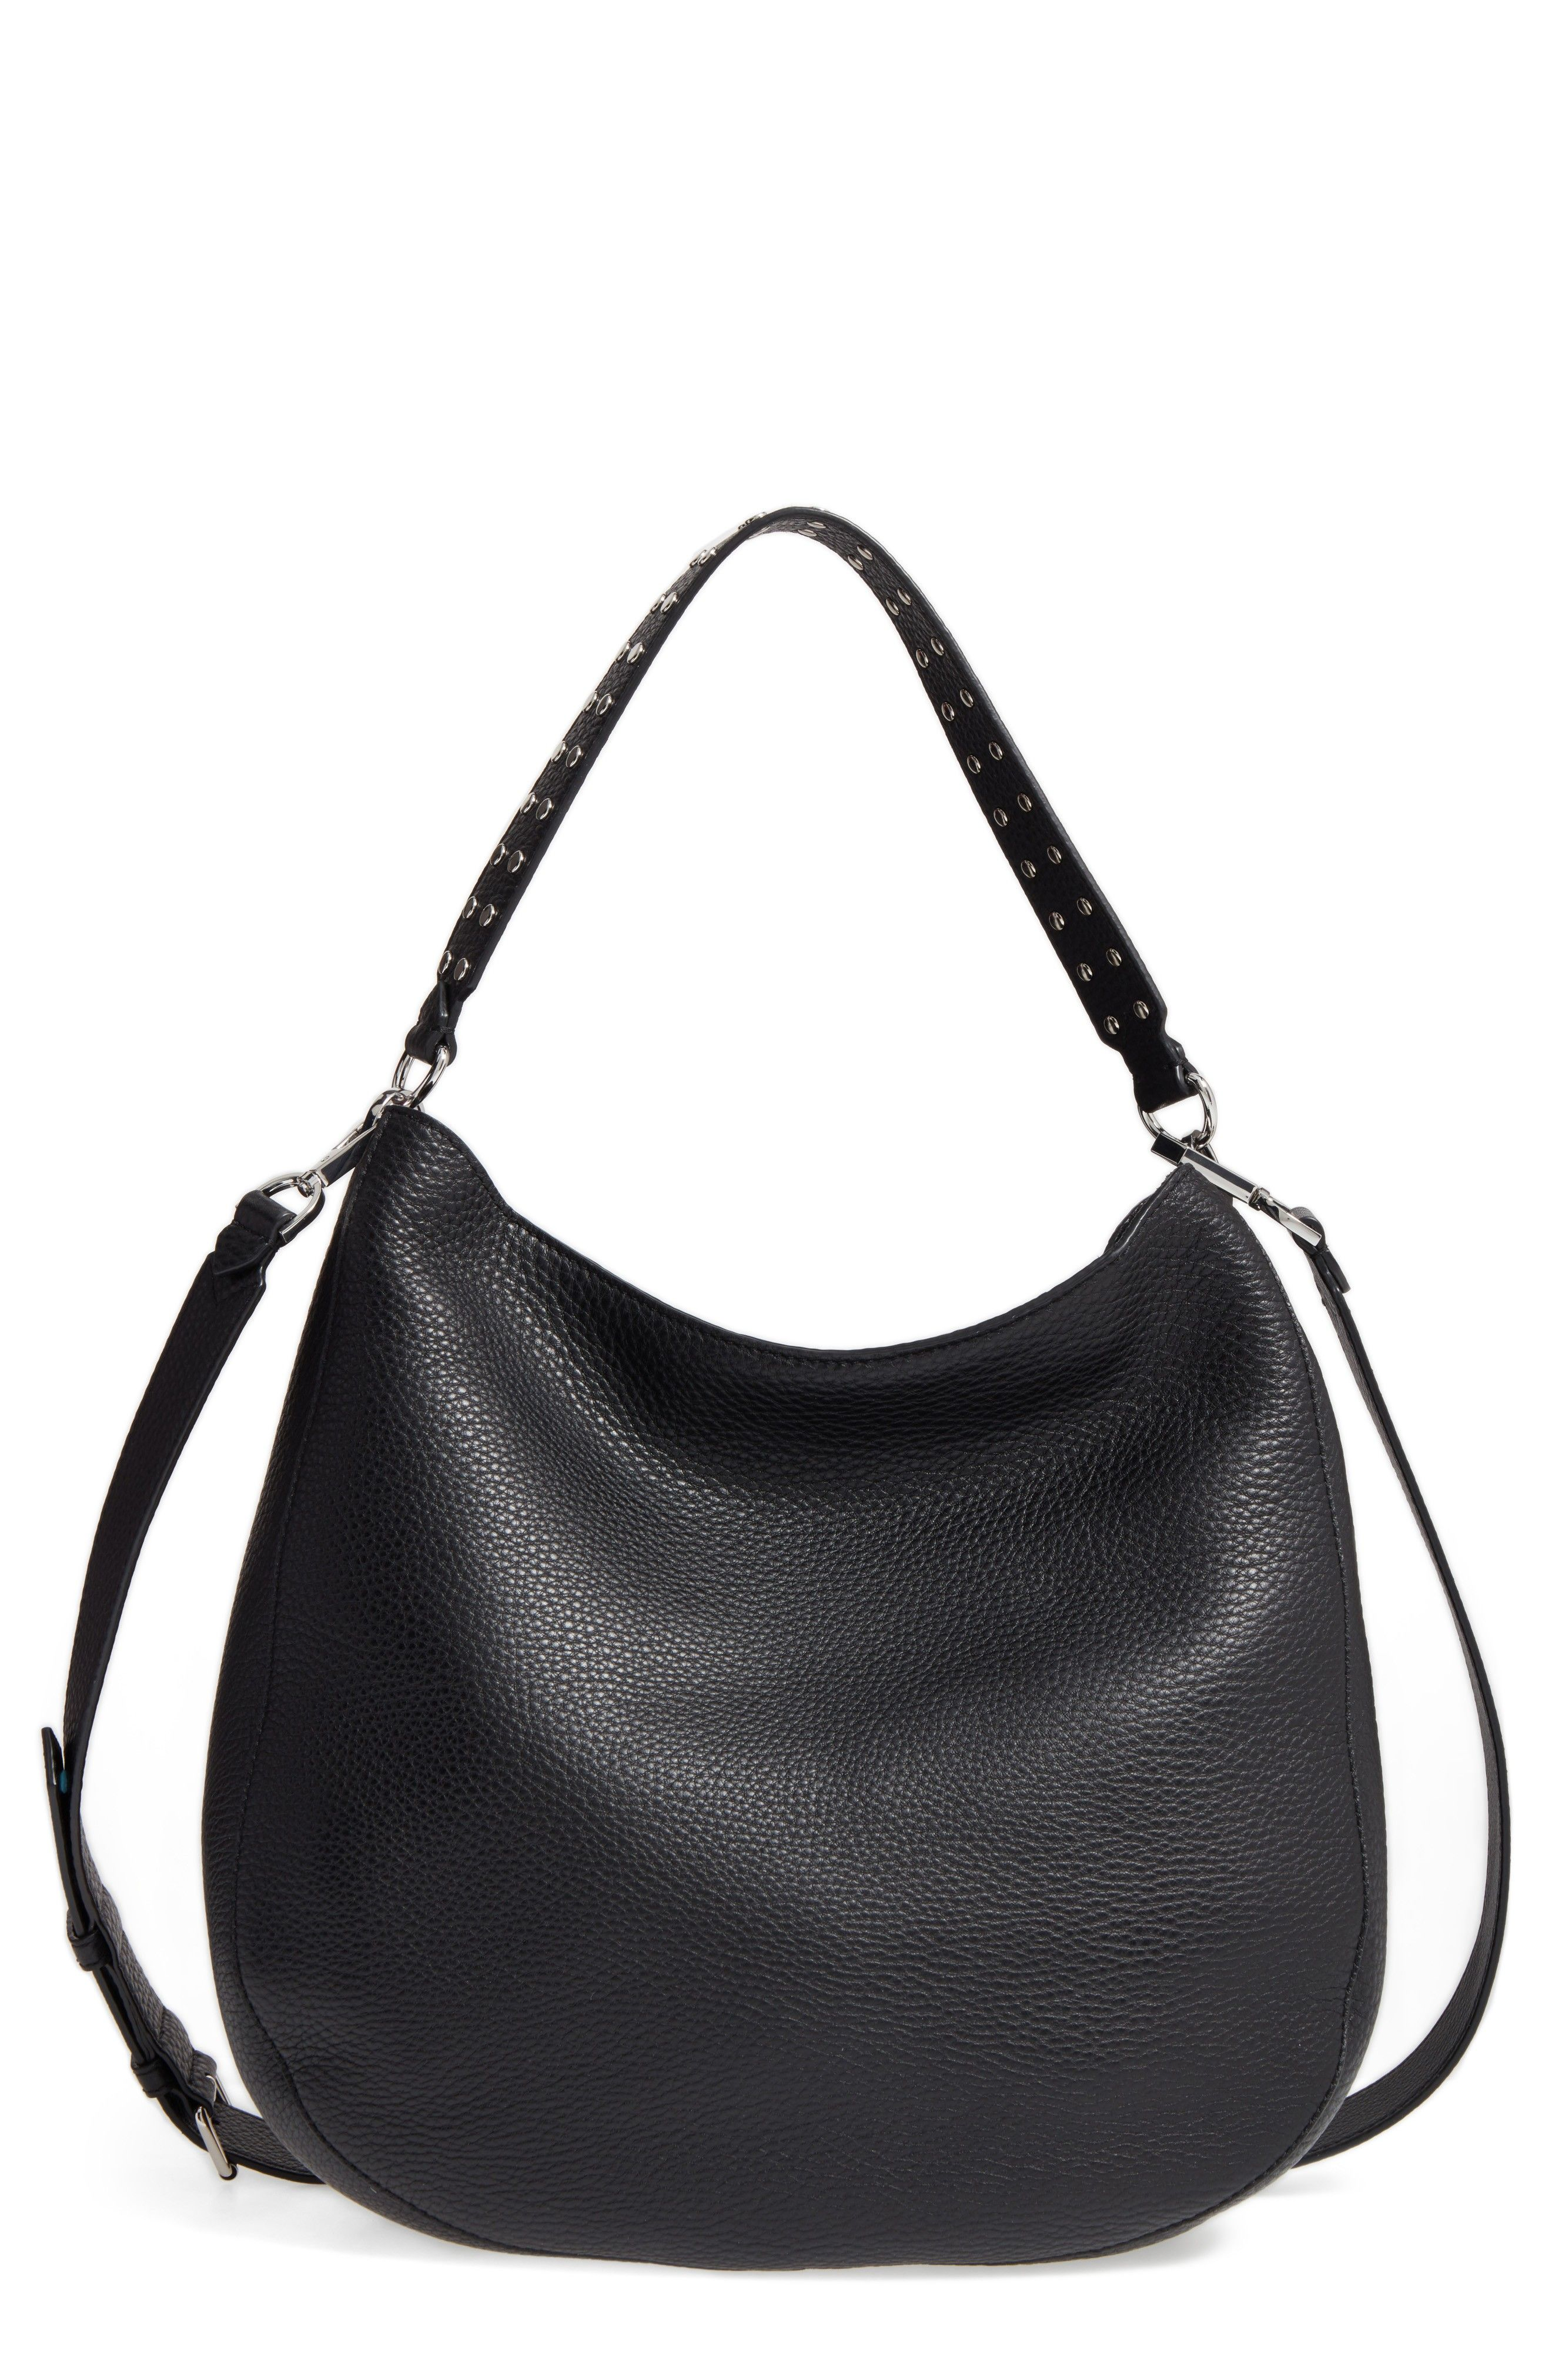 Convertible Leather Hobo - Pebbled leather | Nordstrom Sale ...